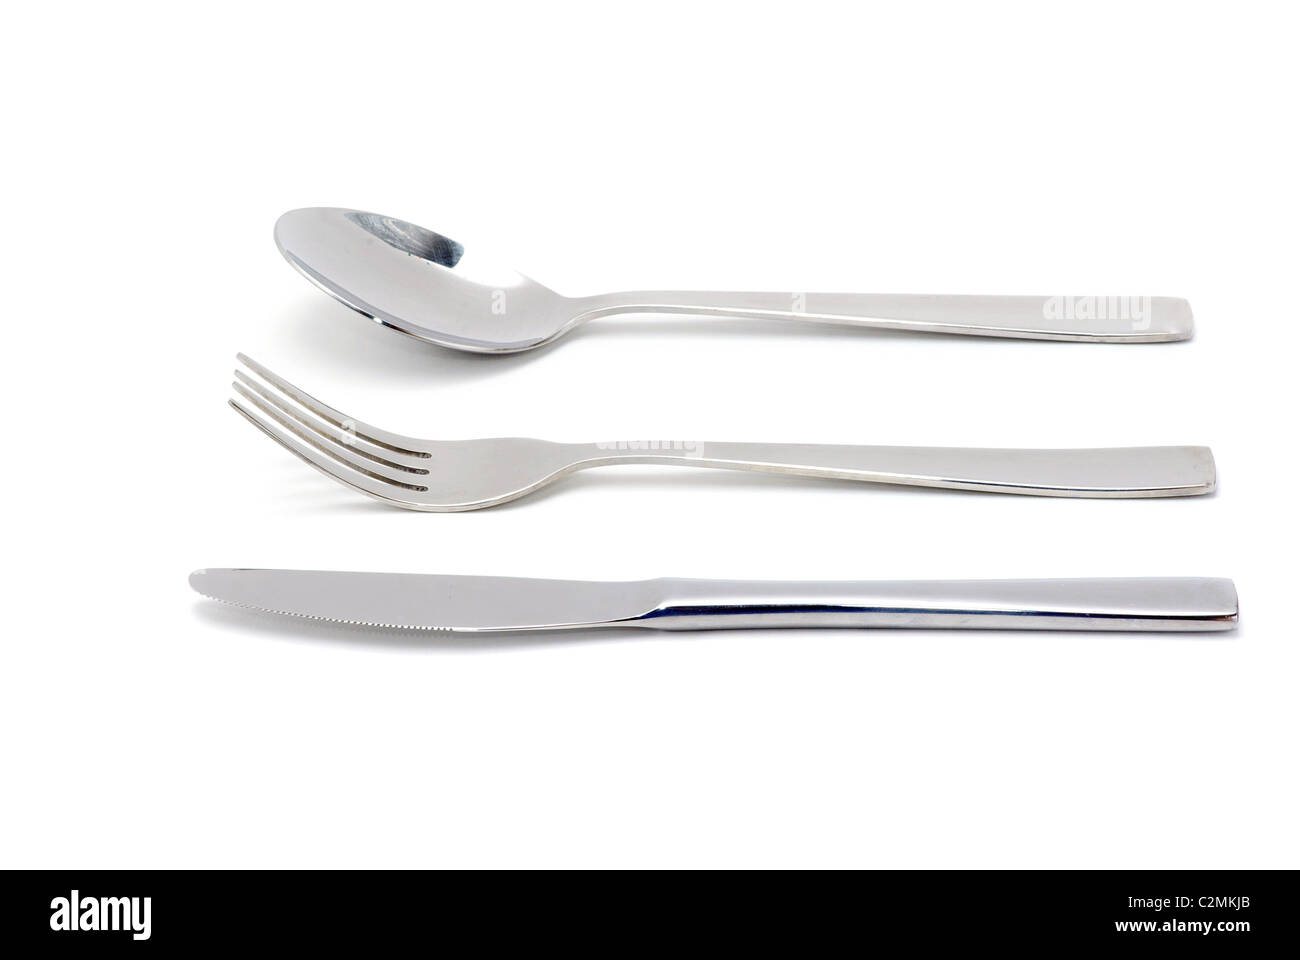 Fork, spoon and knife isolated on white background - Stock Image